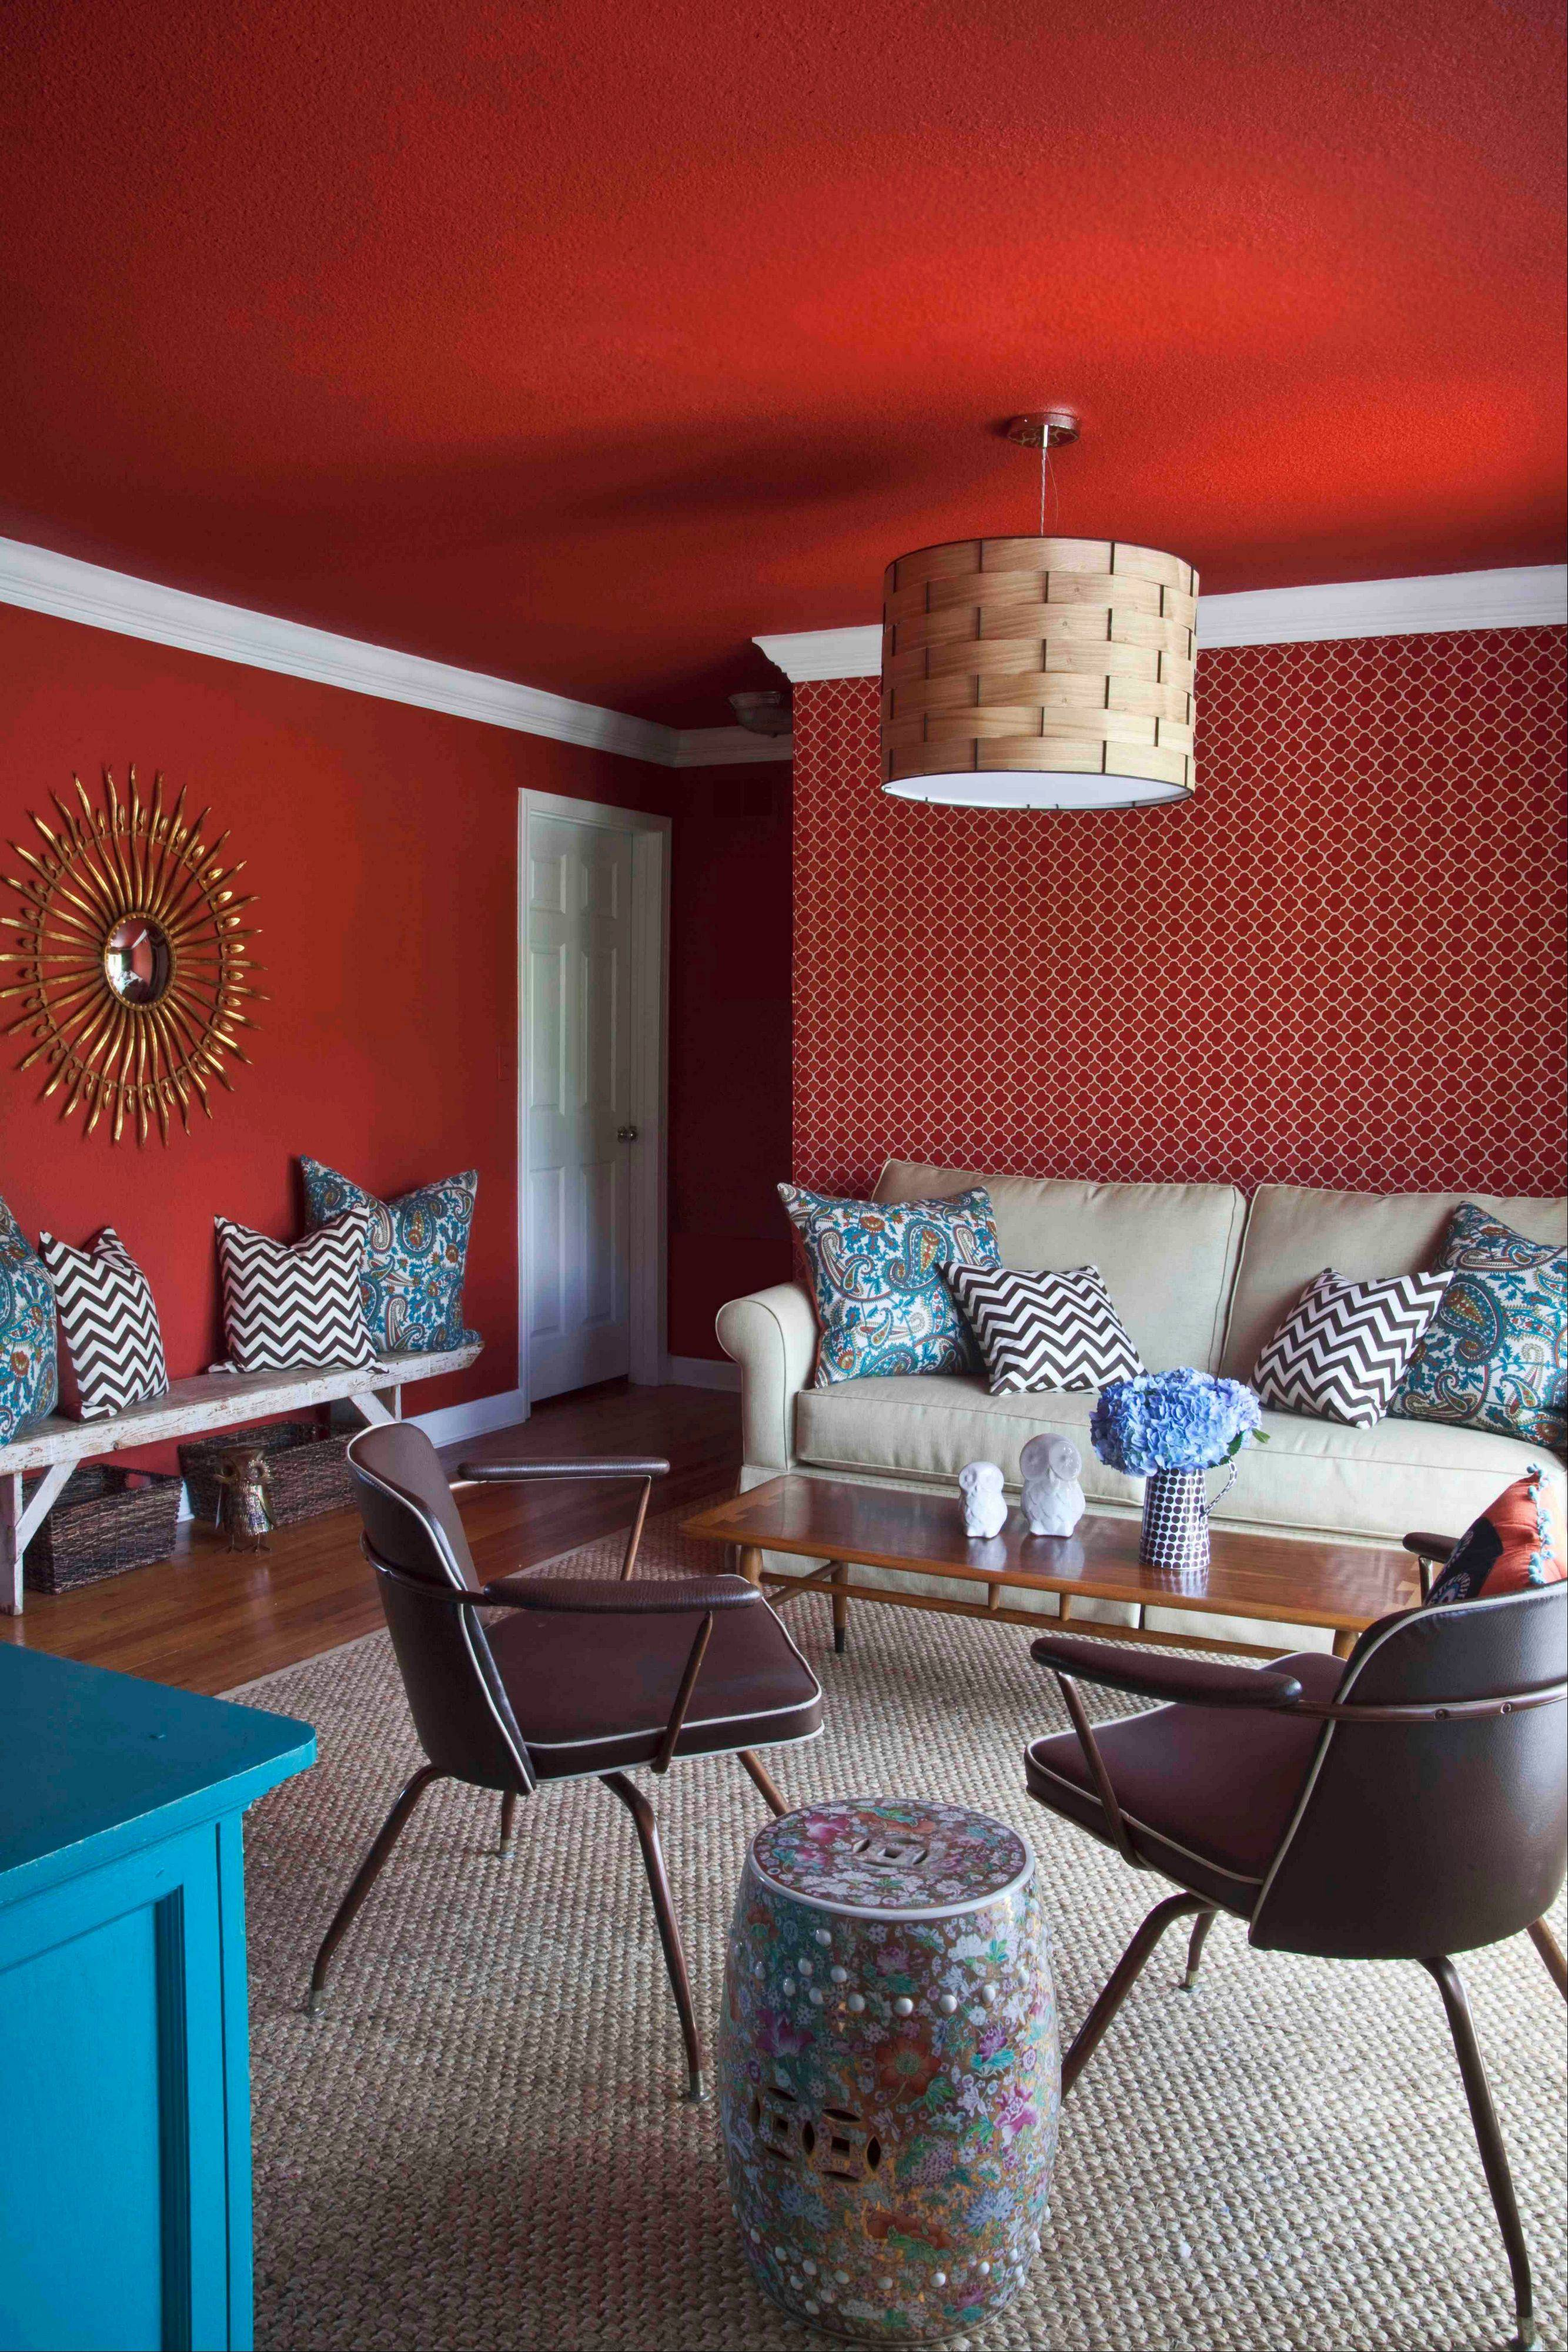 When designing living rooms for clients who entertain heavily around the holidays, designer Brian Patrick Flynn often pairs sofas with swivel chairs to allow for easy conversation in any direction, as well as coffee tables that can double as benches, and occasional tables which also work as stools.